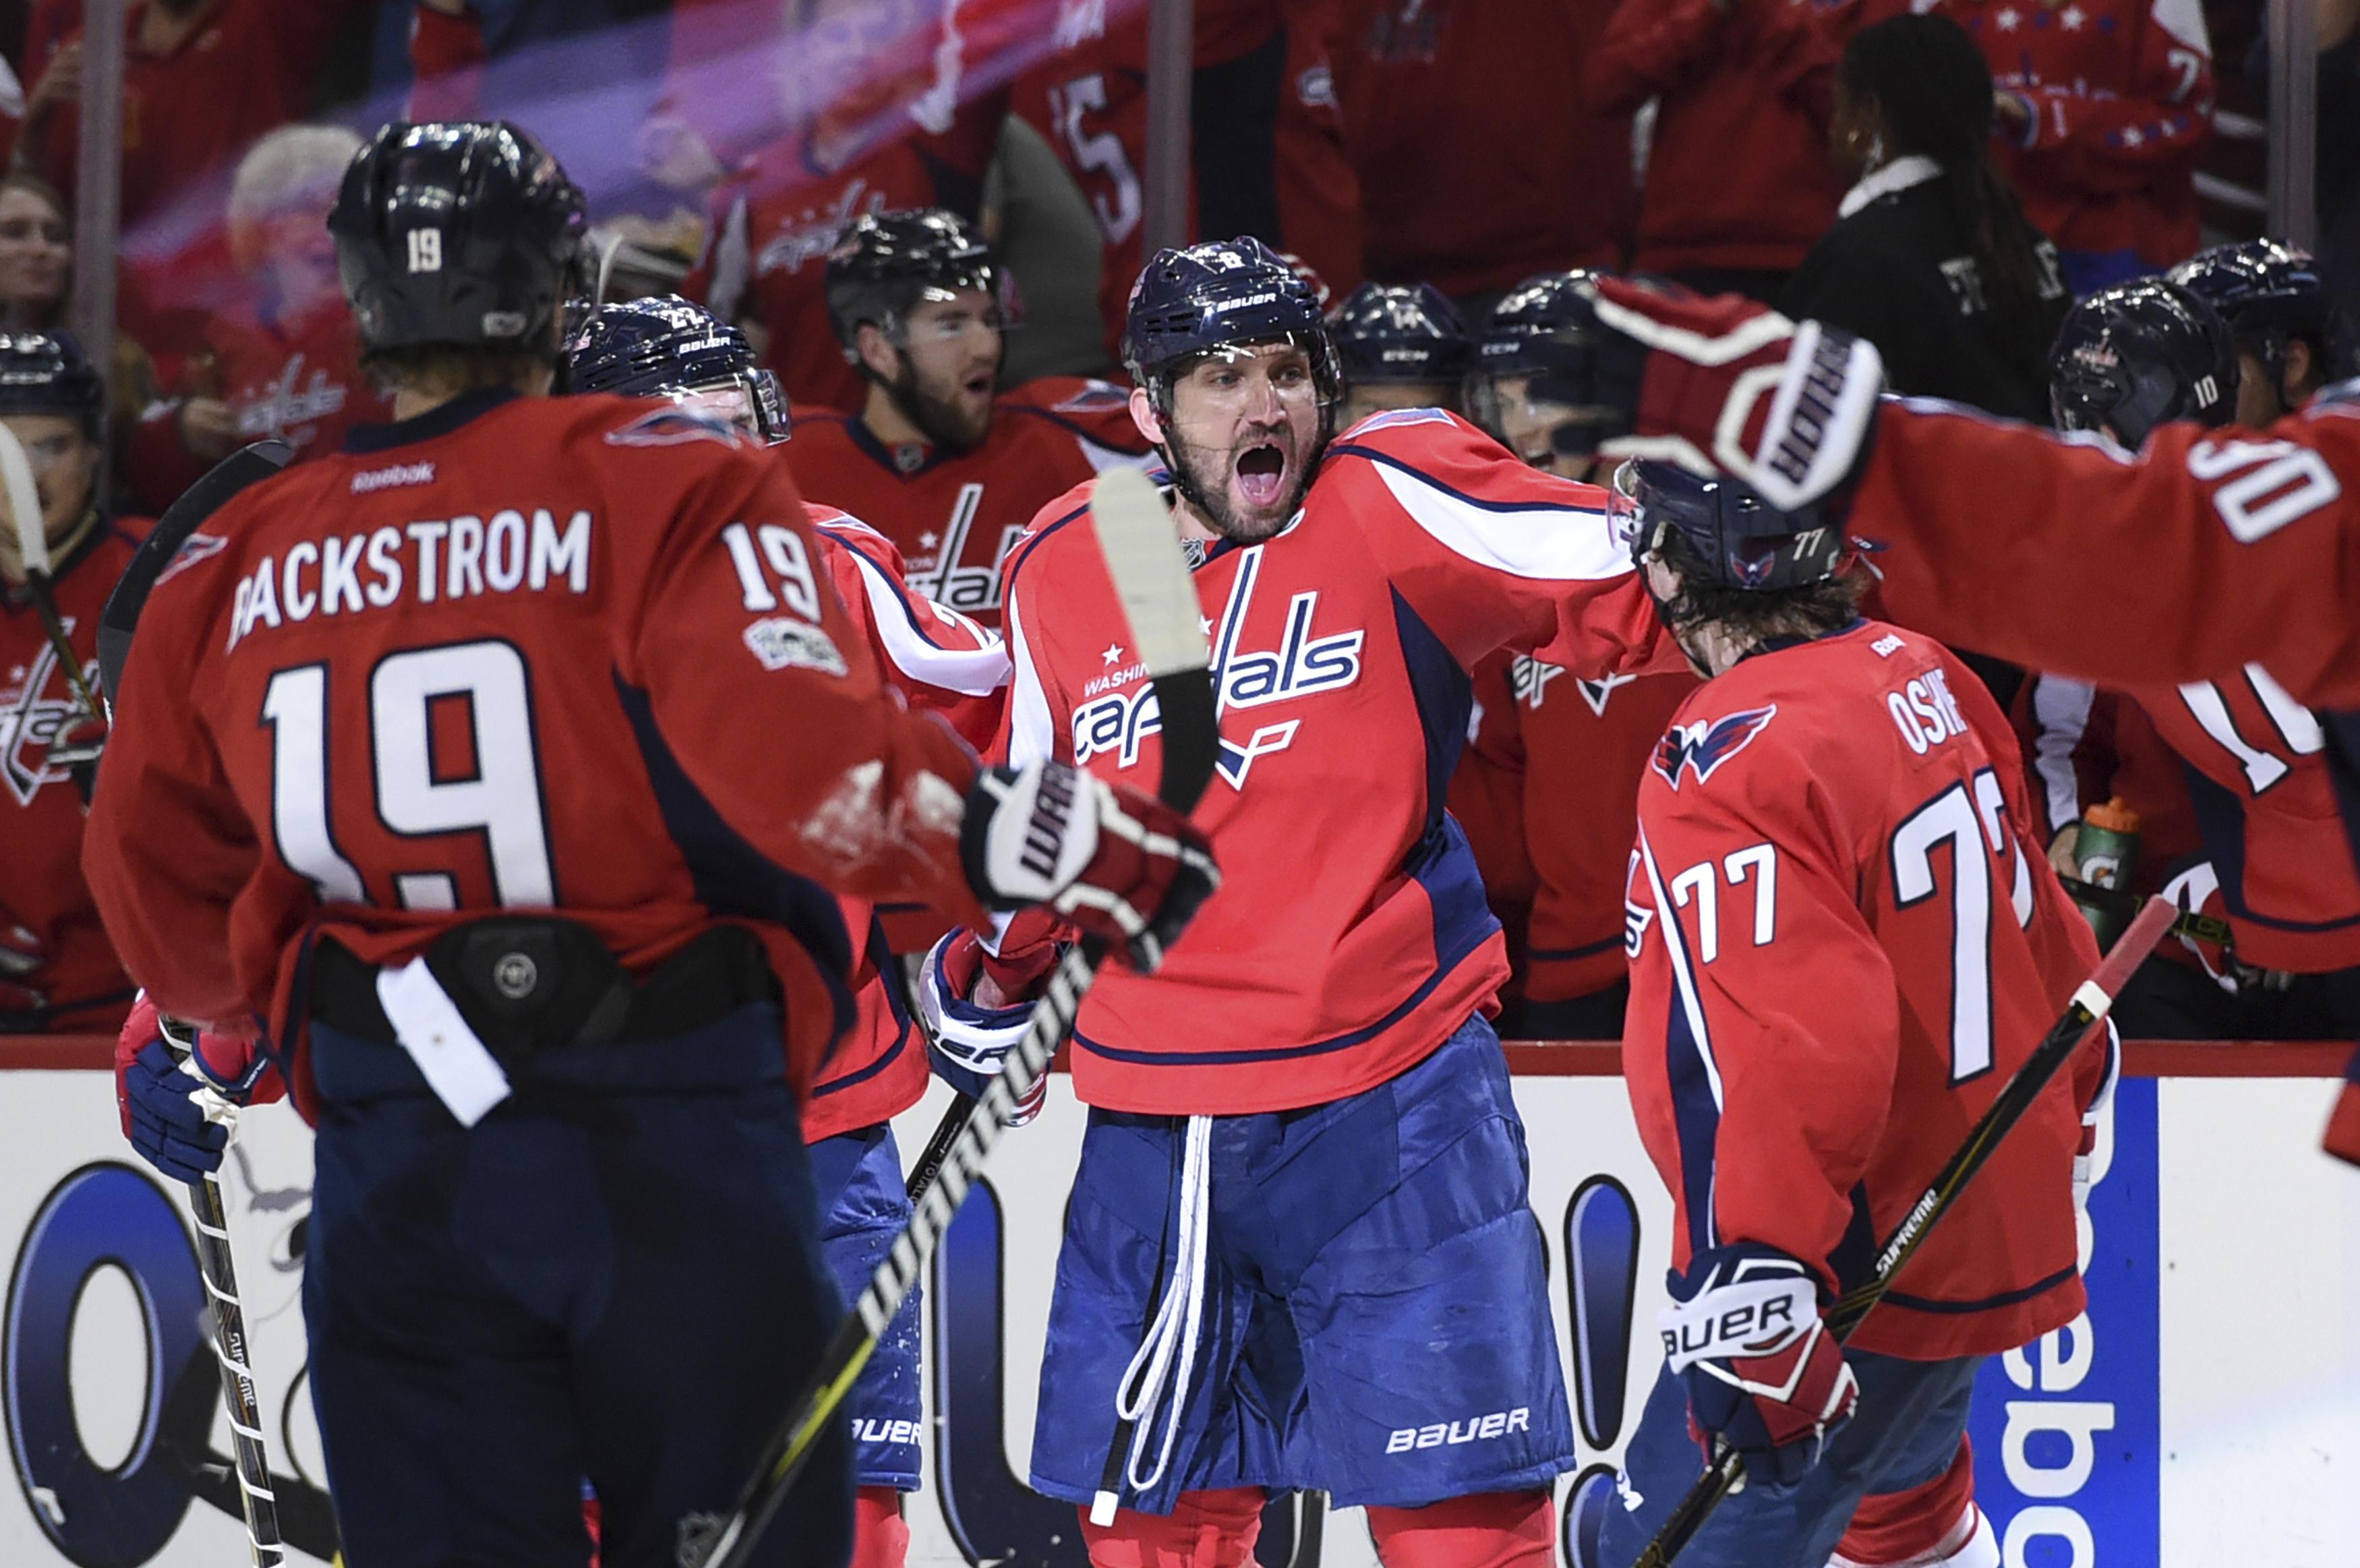 Capitals power play kept first two games tight